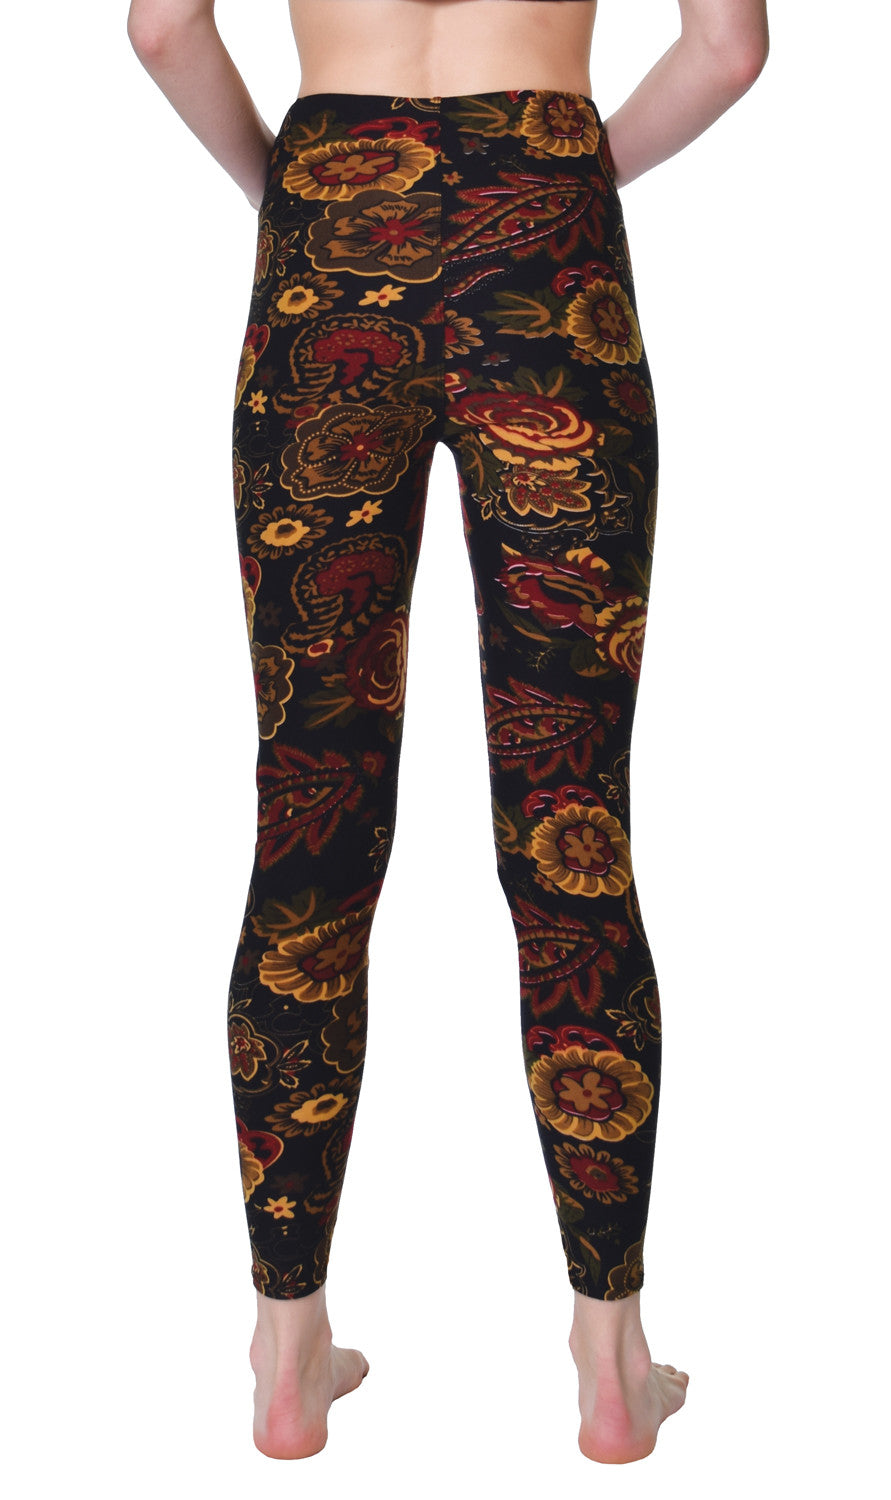 Printed Brushed Leggings - Bronze Olive Floral - VIV Collection